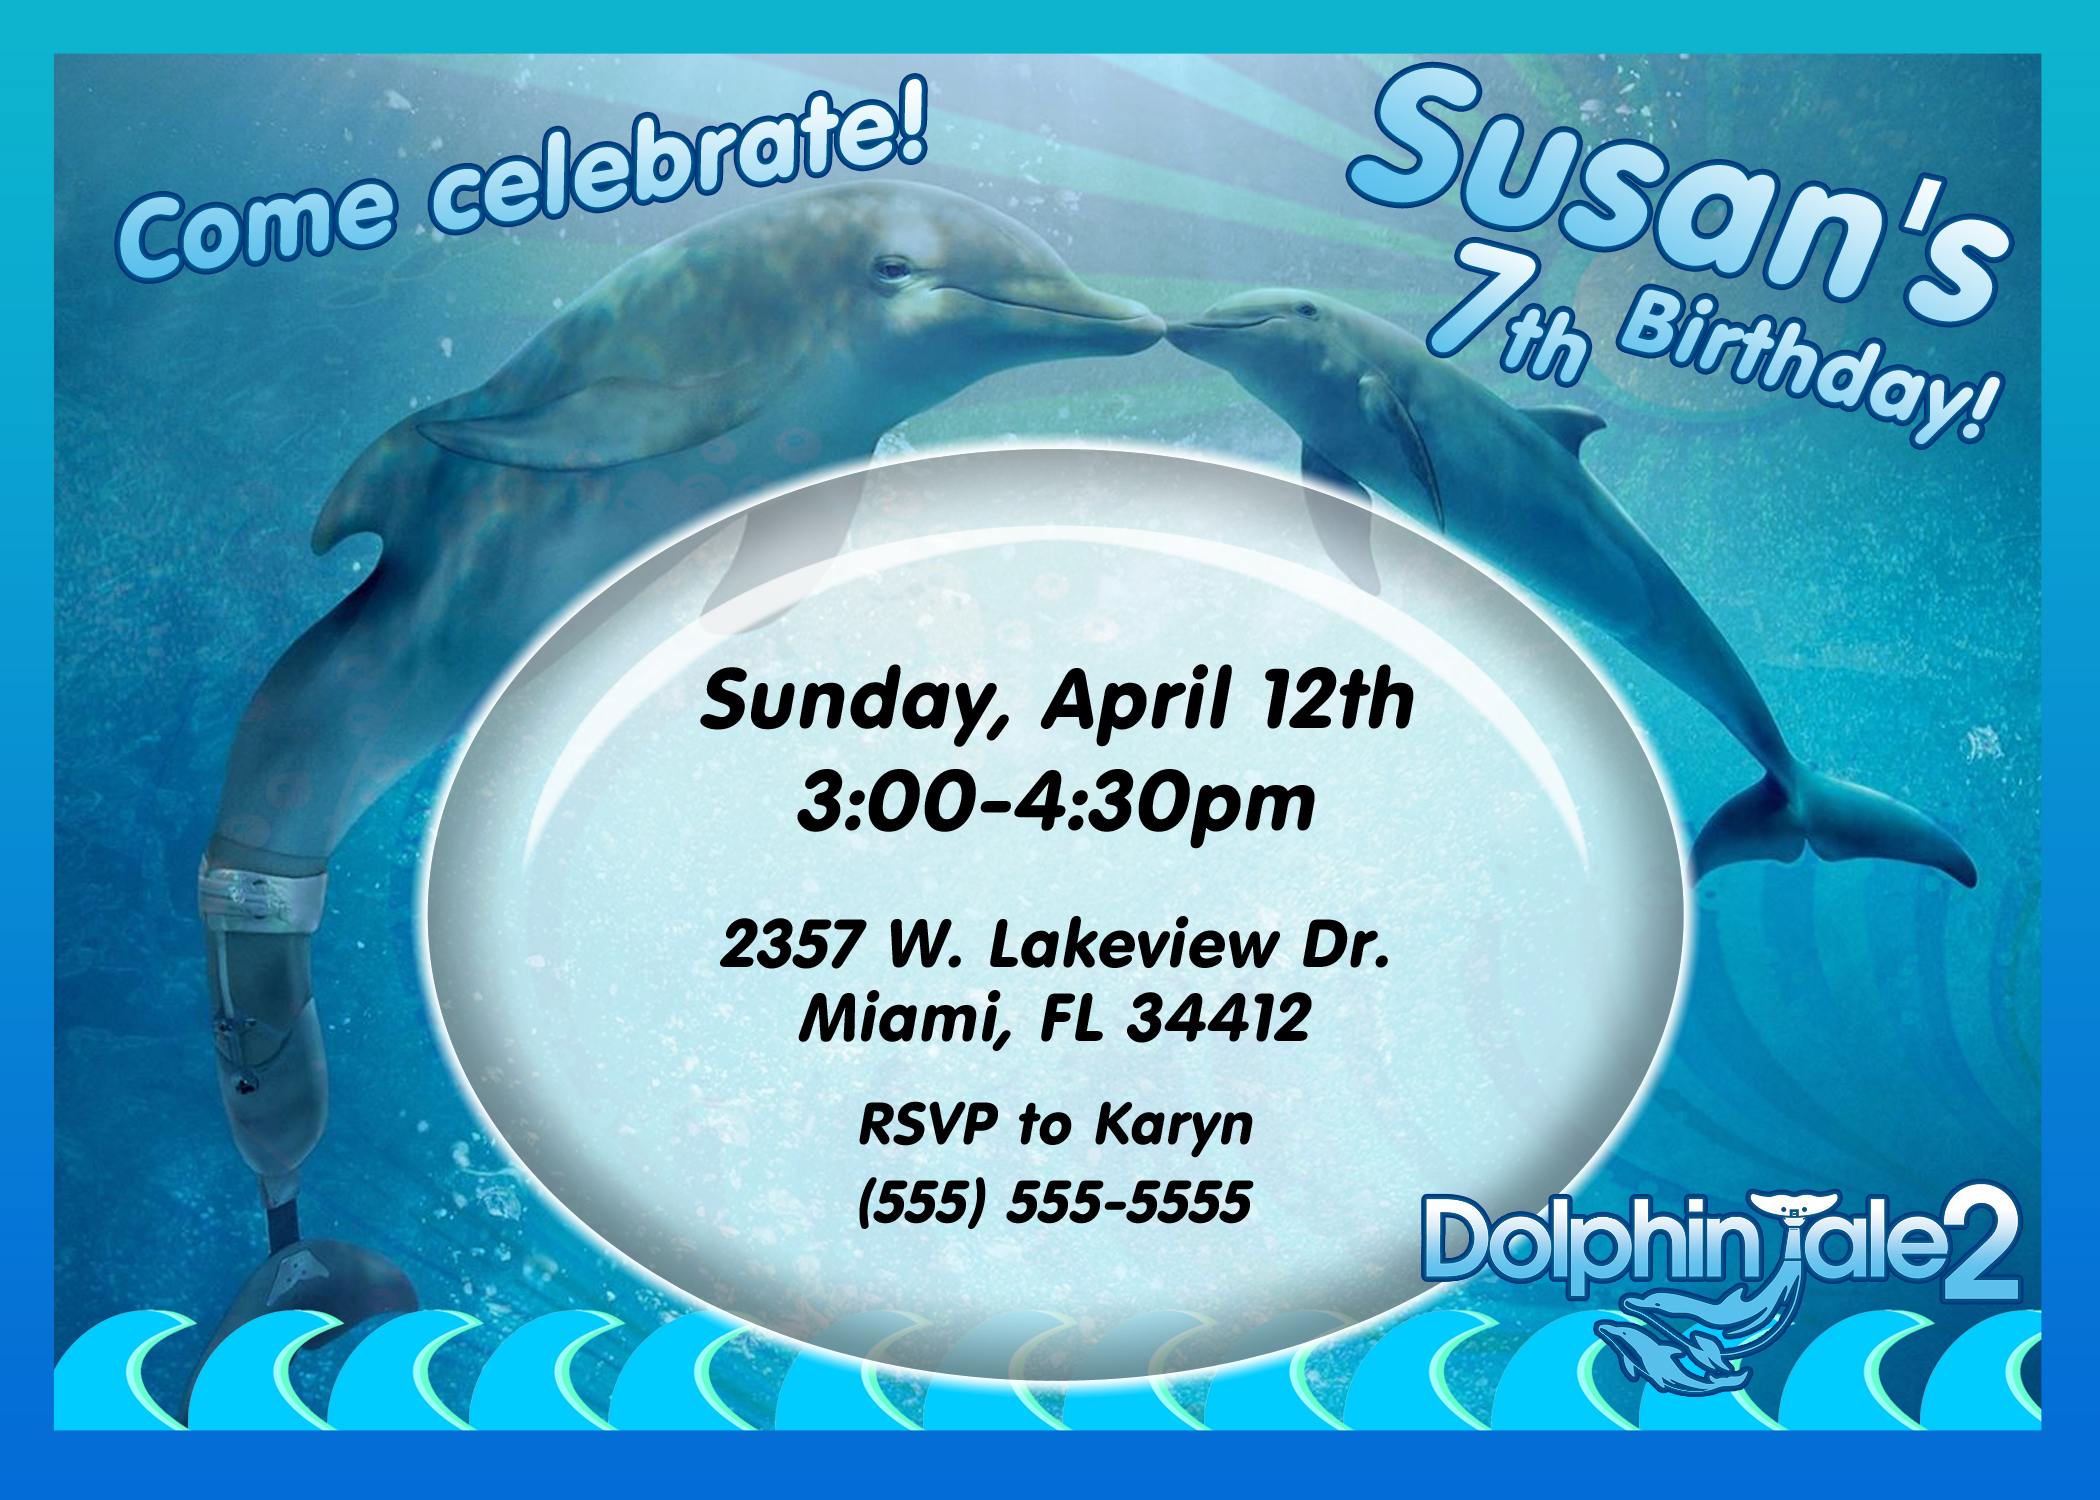 dolphin birthday invitations printable ; dolphin-tale-2-birthday-invitation